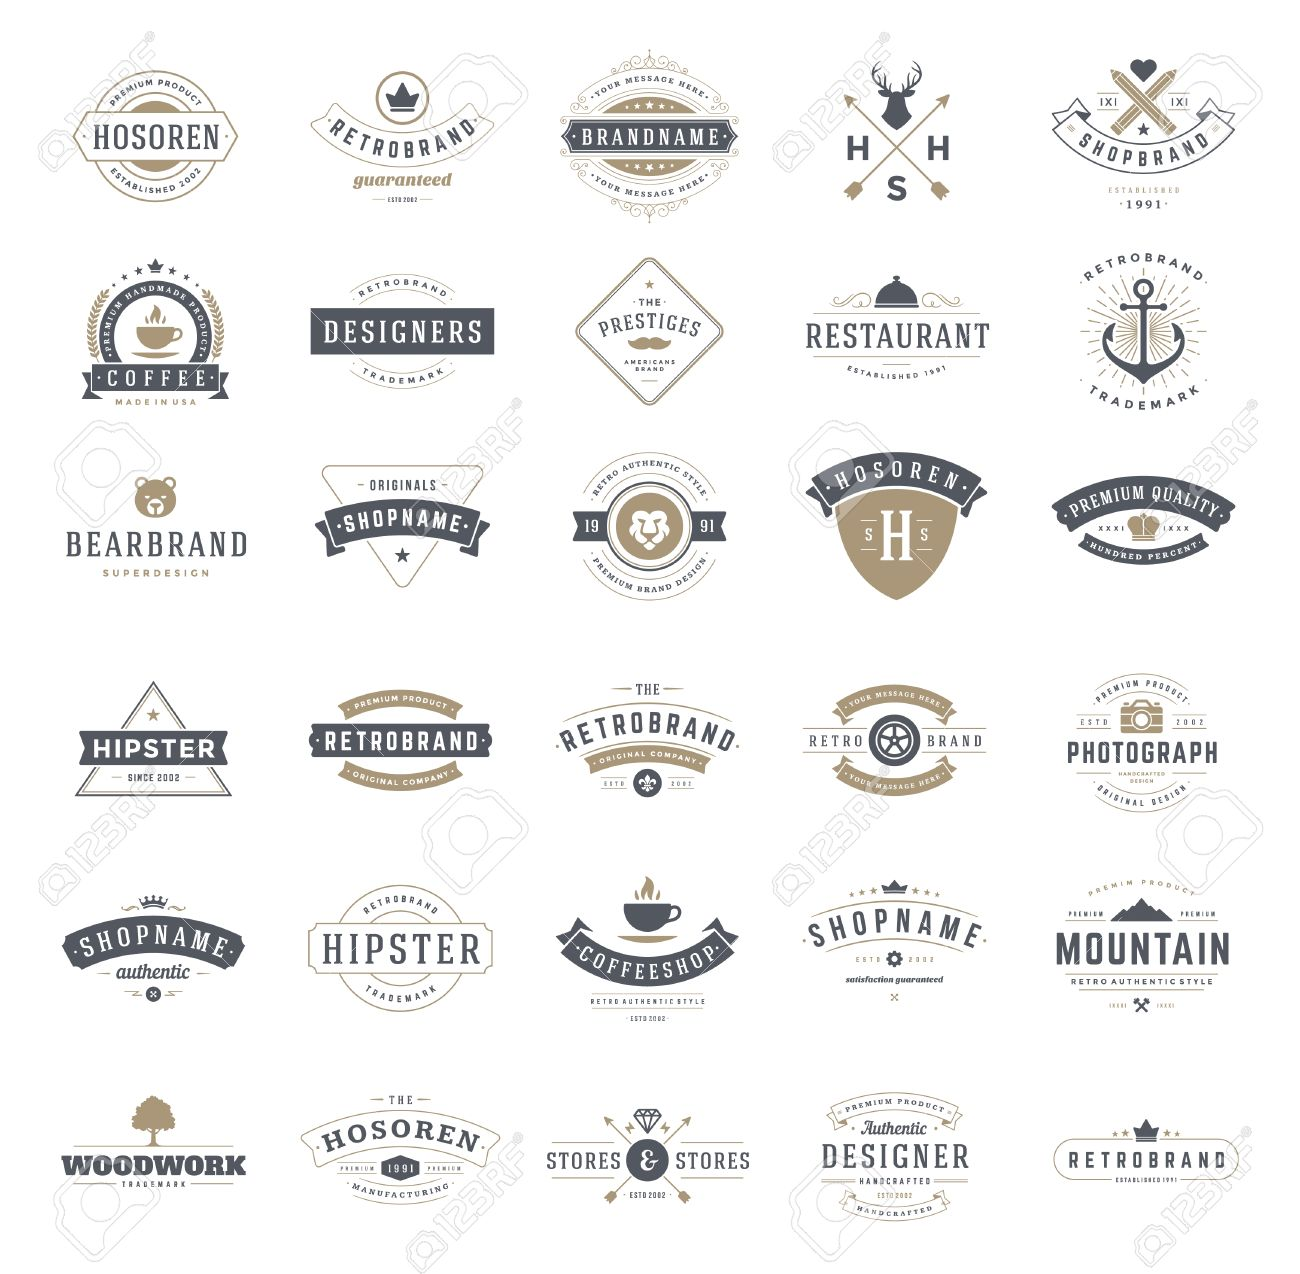 Retro Vintage Logotypes or insignias set. Vector design elements, business signs, logos, identity, labels, badges, ribbons, stickers and other branding objects. - 46168368